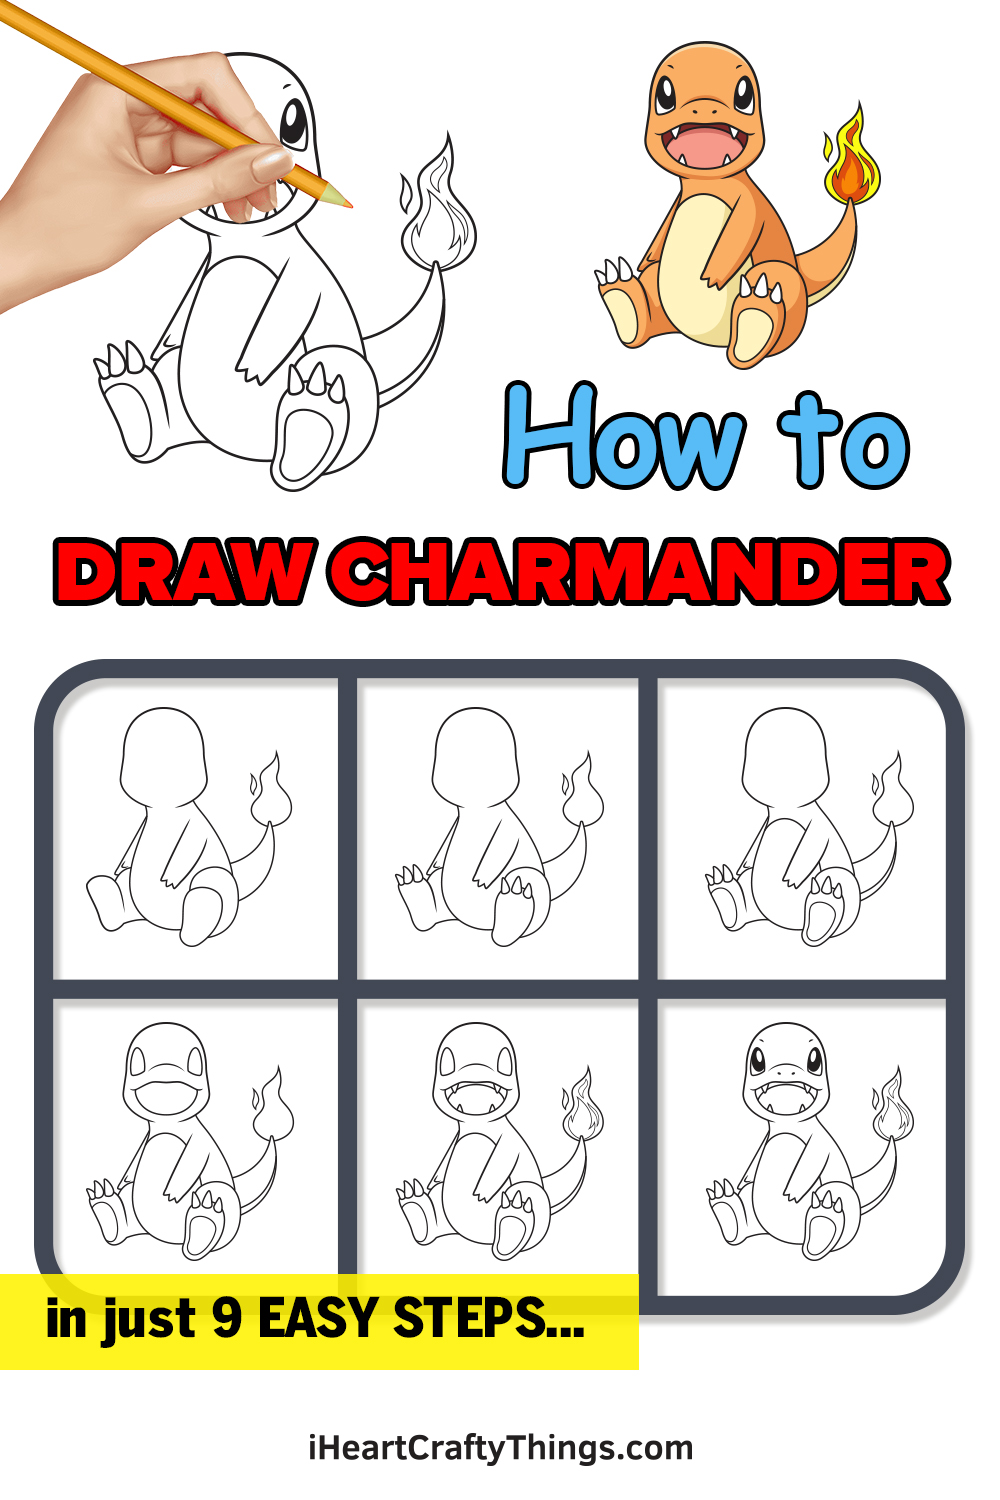 how to draw charmander in 9 easy steps